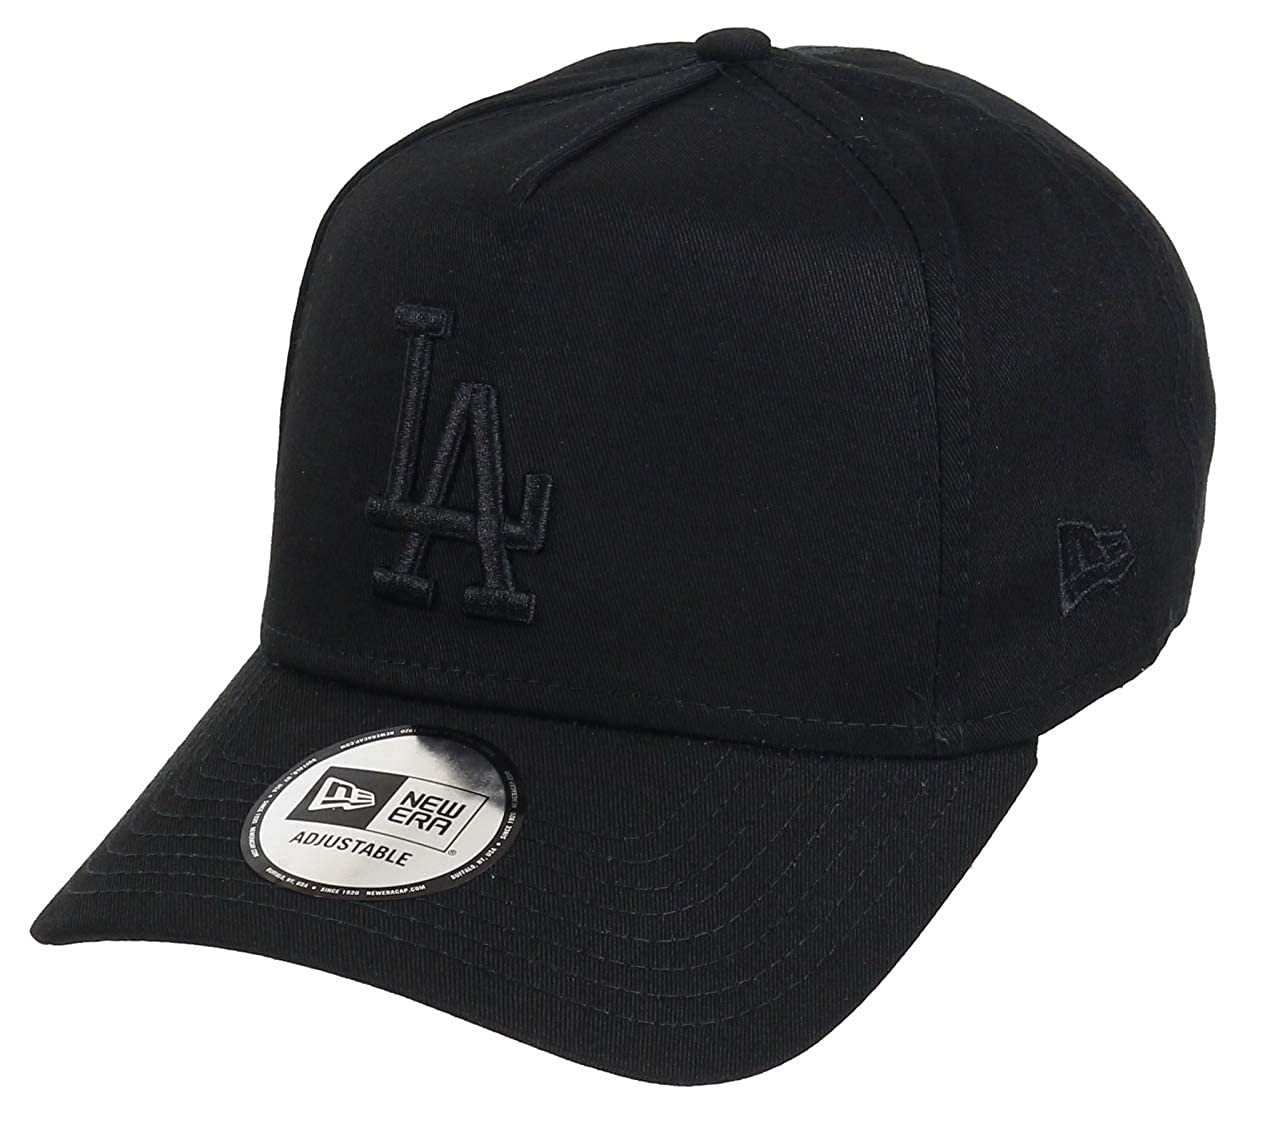 0a33190ca98 New Era Los Angeles Dodgers Adjustable A Frame Cap League Essential Black  Black - One-Size  Amazon.co.uk  Clothing